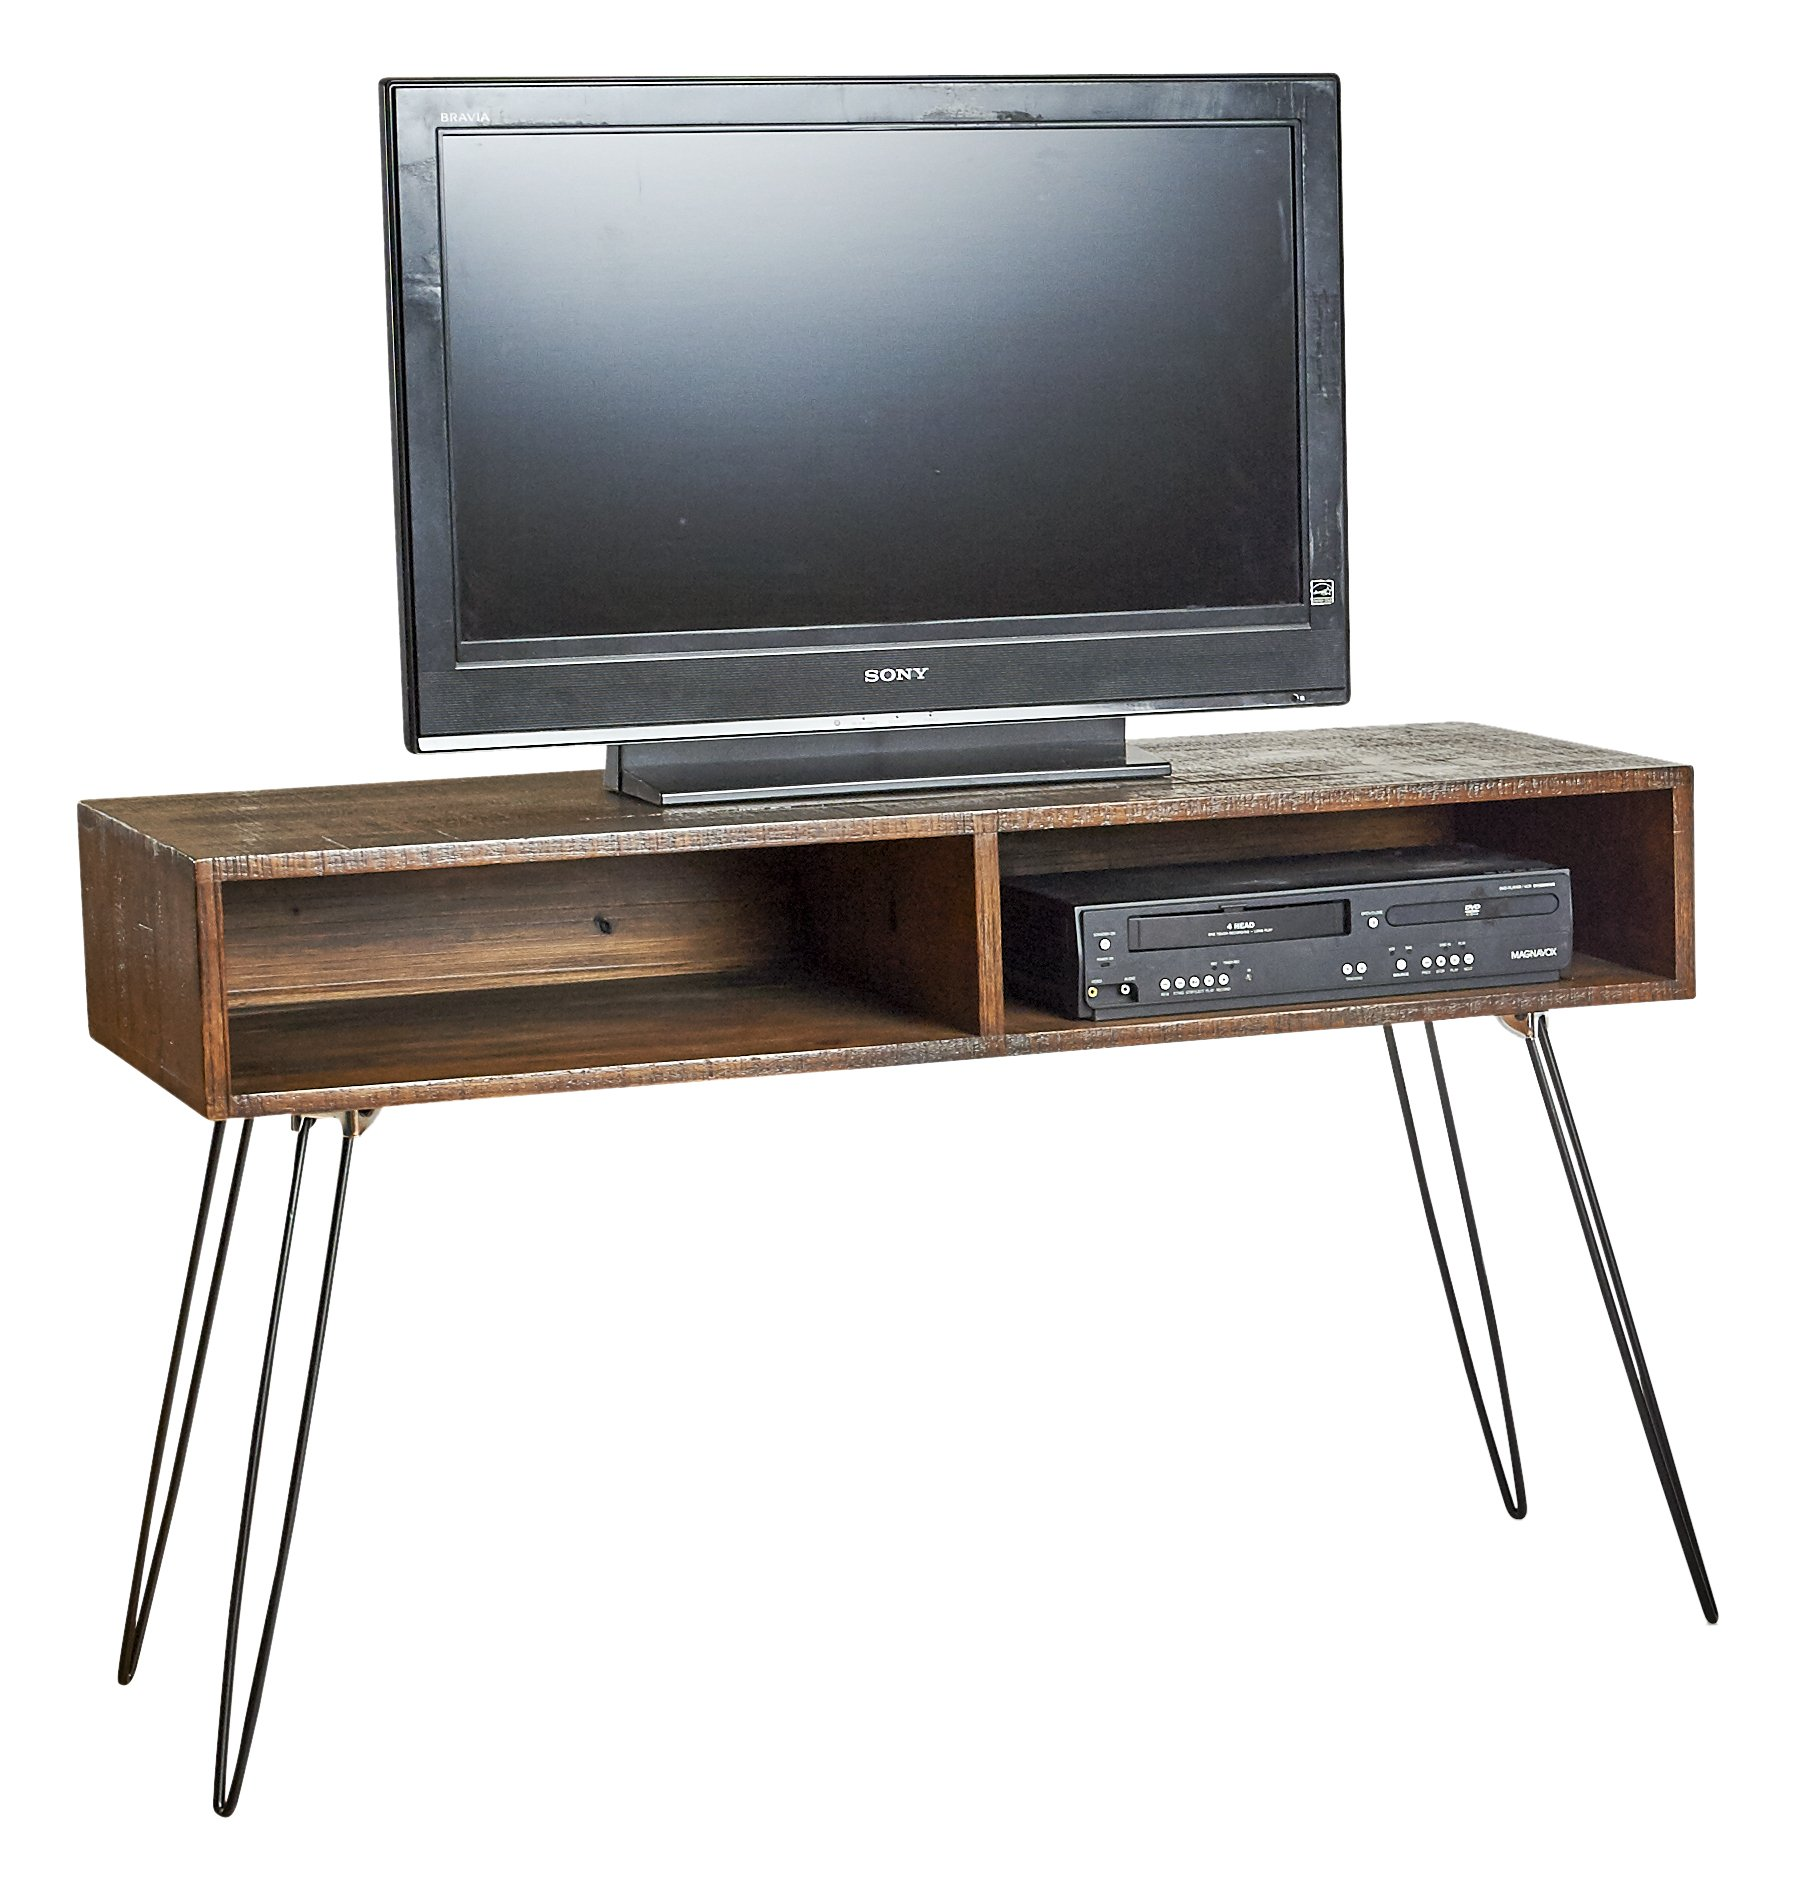 Belmont Home 48 inch Natural Finish Media Console by Belmont Home